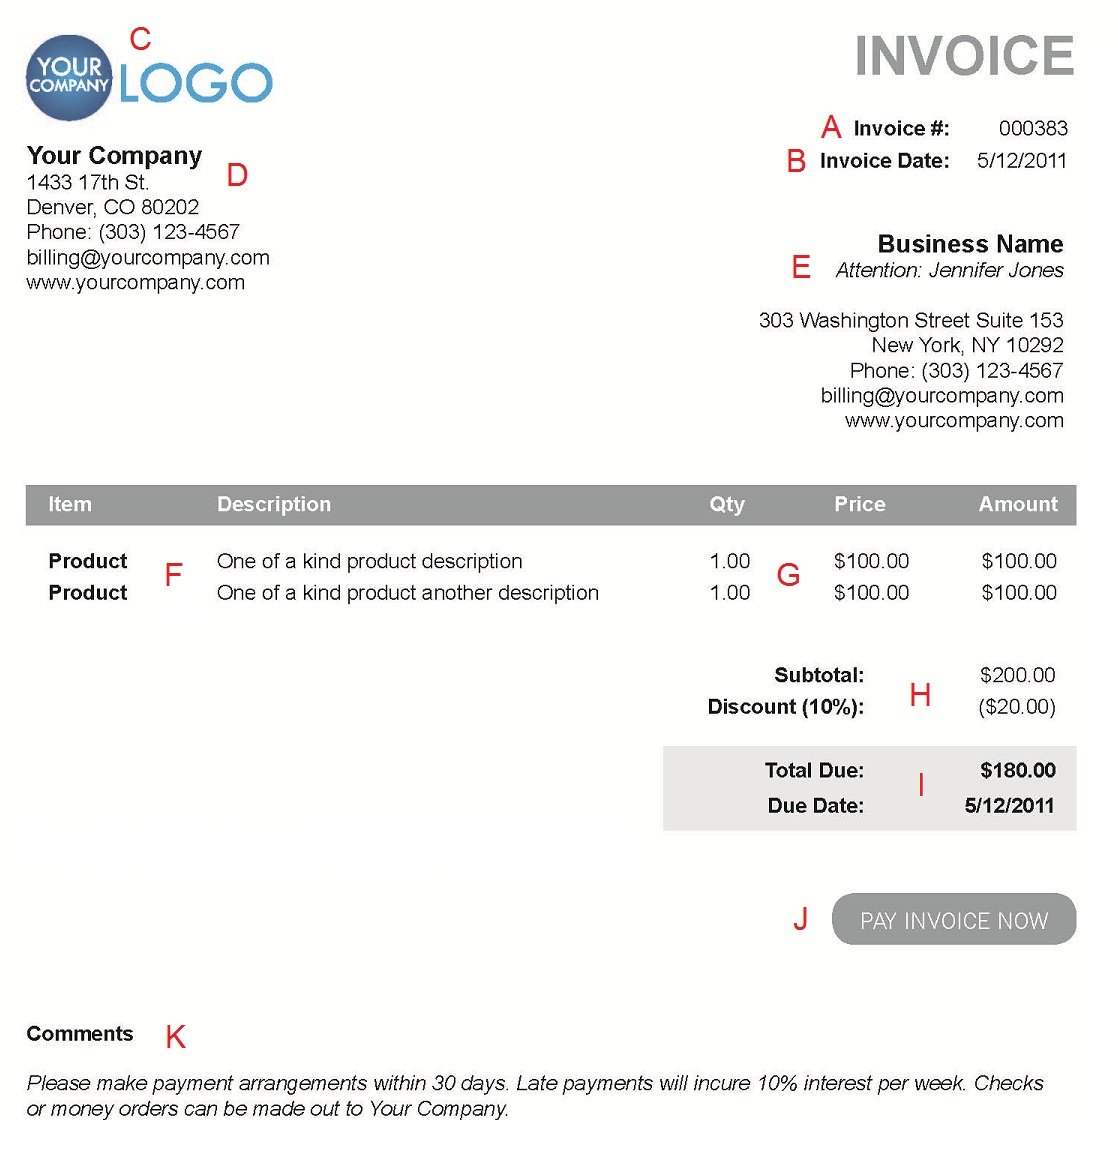 Gpwaus  Picturesque The  Different Sections Of An Electronic Payment Invoice With Licious A  With Charming Motel Receipt Also Mobile Receipt Printer For Iphone In Addition No Receipts For Irs Audit And Receipt Printer Paper Size As Well As Iphone App To Scan Receipts Additionally Receipt Storage Box From Paysimplecom With Gpwaus  Licious The  Different Sections Of An Electronic Payment Invoice With Charming A  And Picturesque Motel Receipt Also Mobile Receipt Printer For Iphone In Addition No Receipts For Irs Audit From Paysimplecom